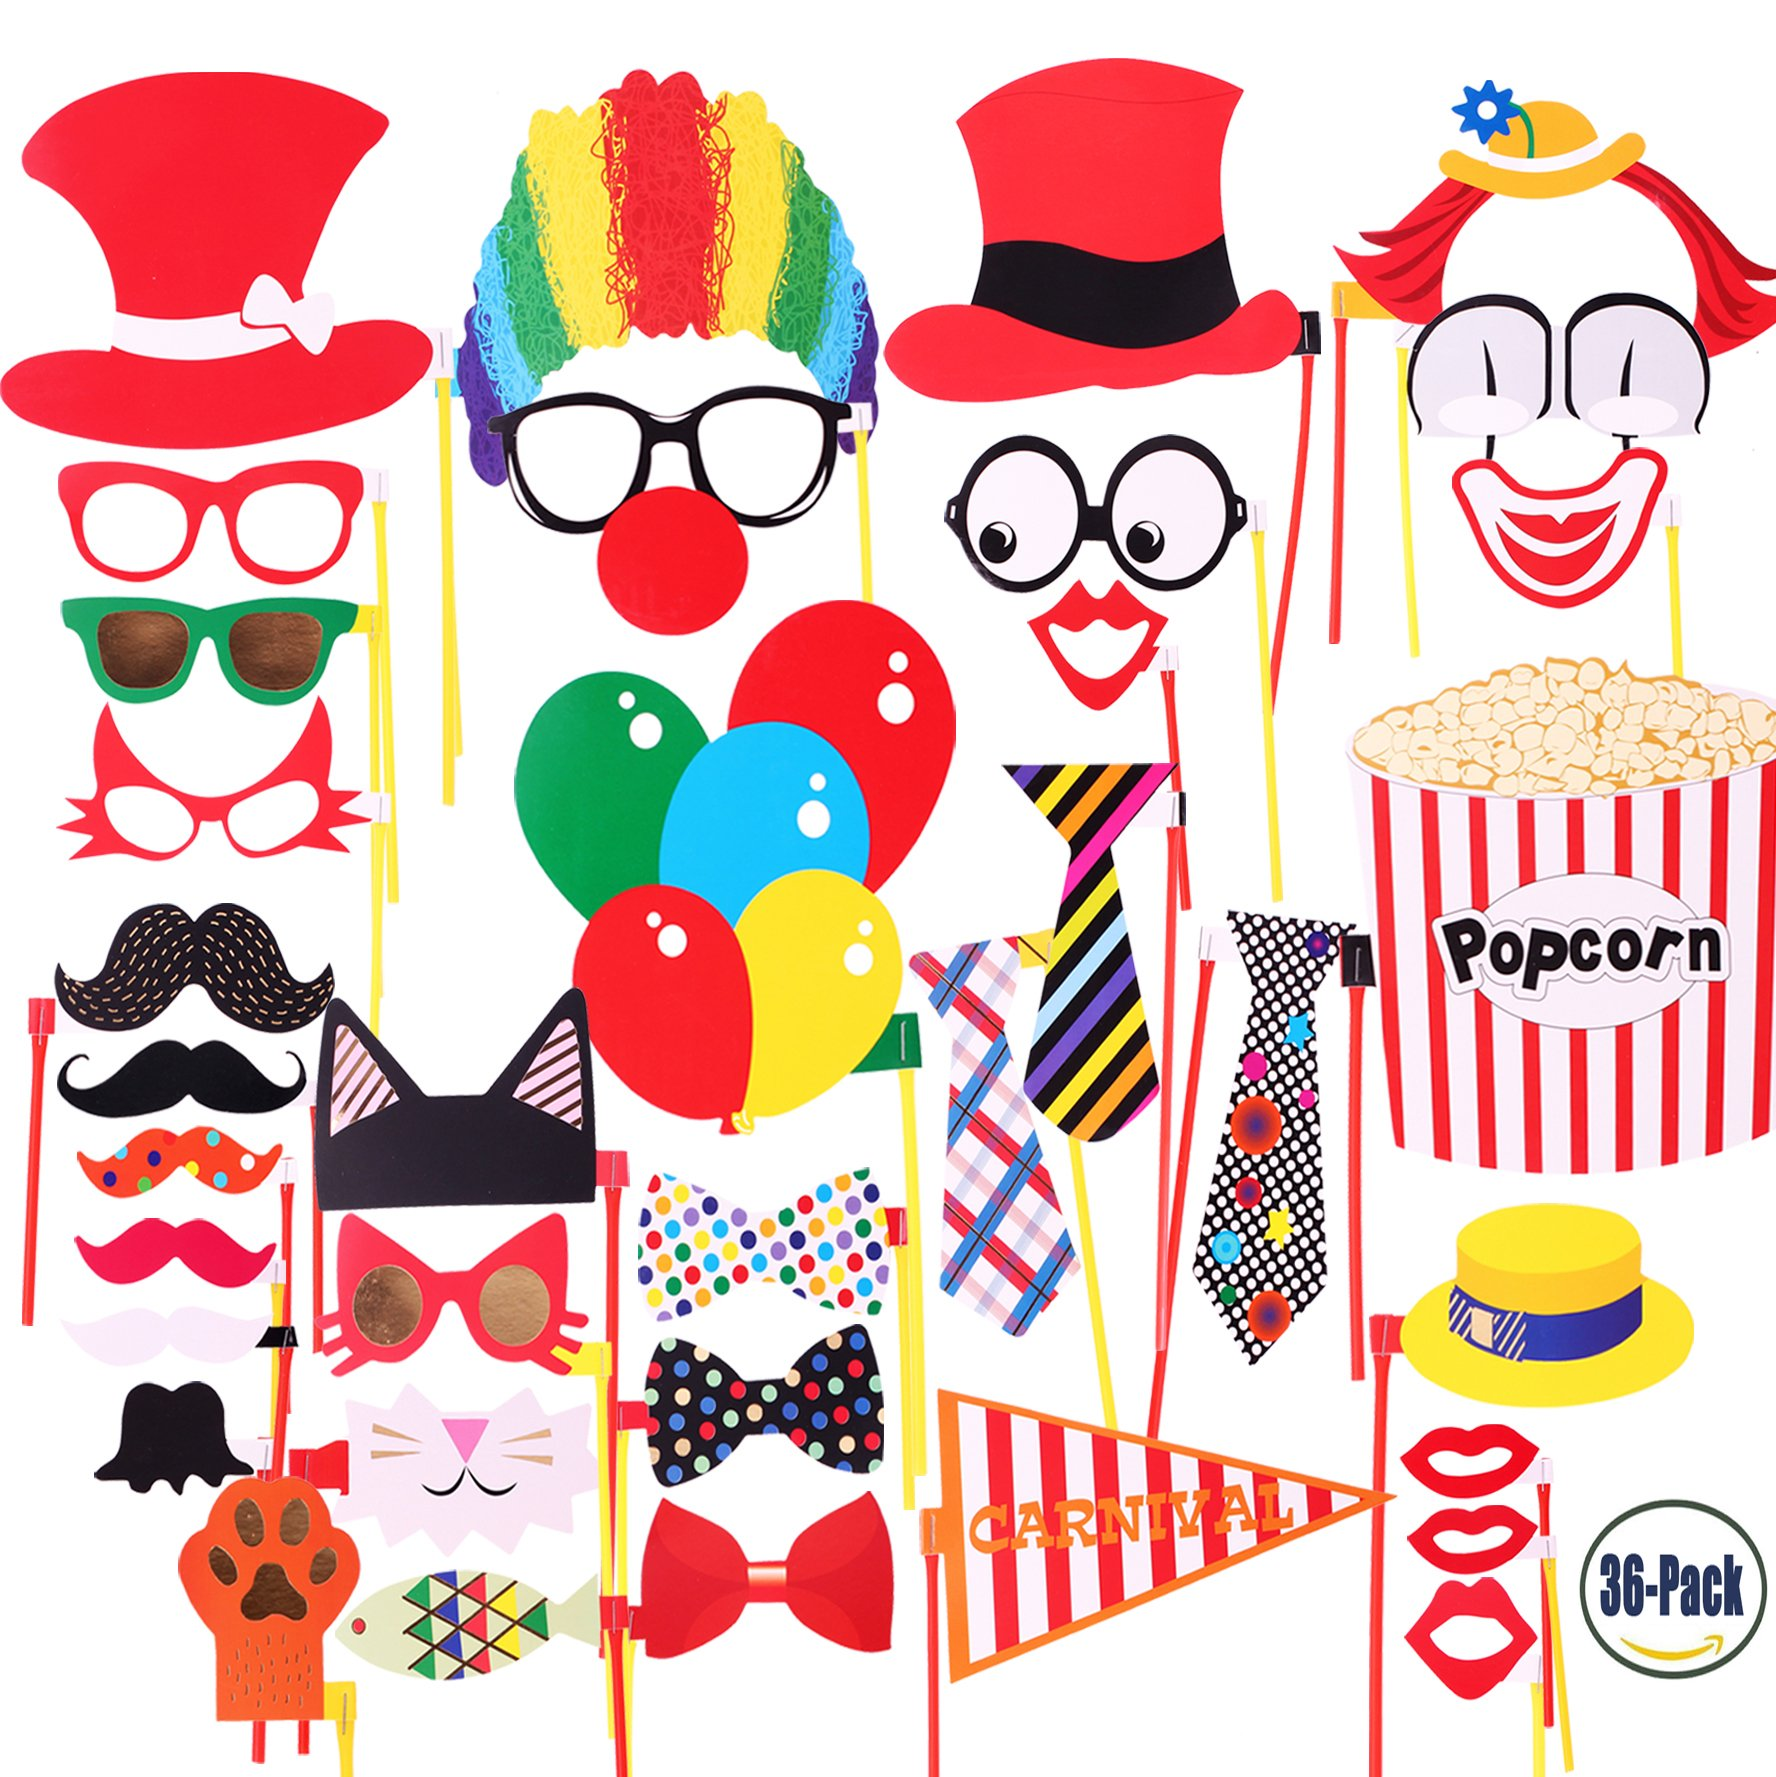 Attached Photo Booth Props, COOLOO Party Favors for Wedding Birthday Carnival Bachelorette Dress-up Acessories 36 Pcs, Costume with Mustache, Glasses, Cat, Clown, Bowler, Bowties on Plastic Sticks by COOLOO